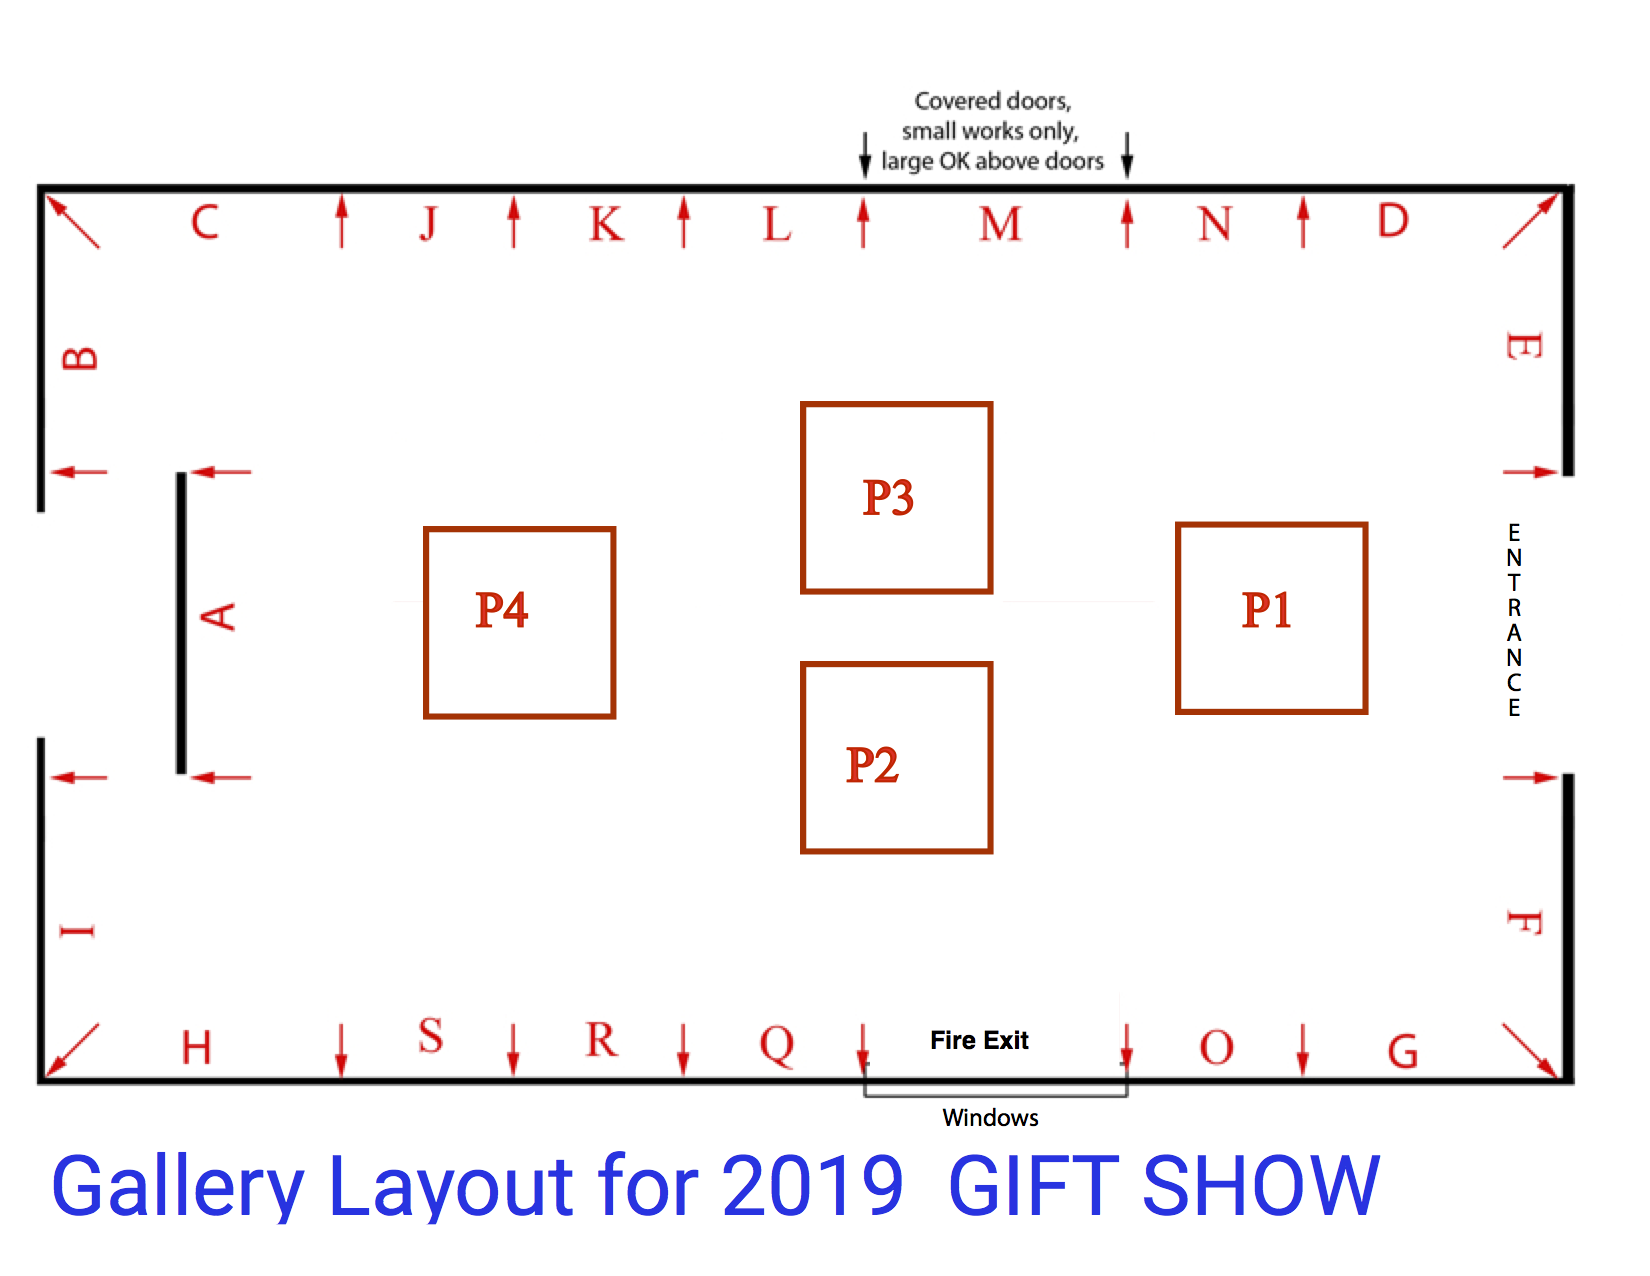 GalleryLayout_GiftShow2019